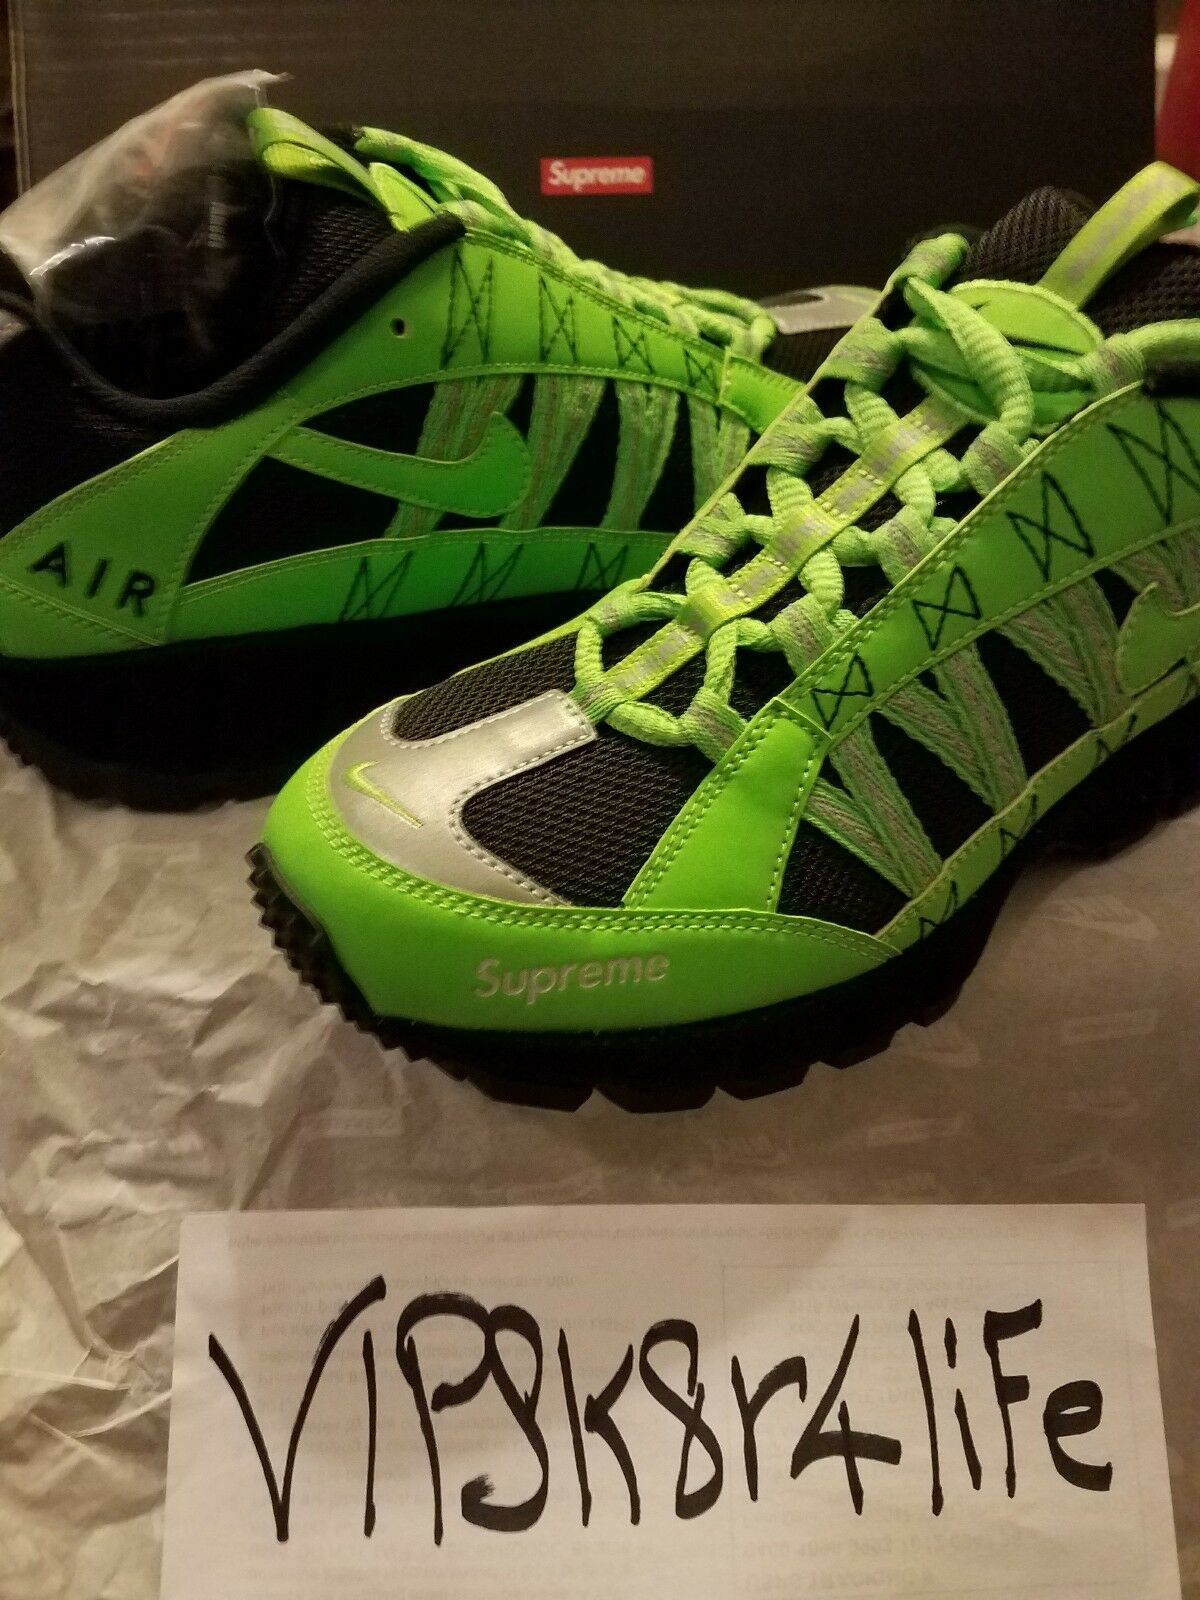 Supreme x Nike Air Humara Green FW17 Size 9.5 shoes Confirmed Order